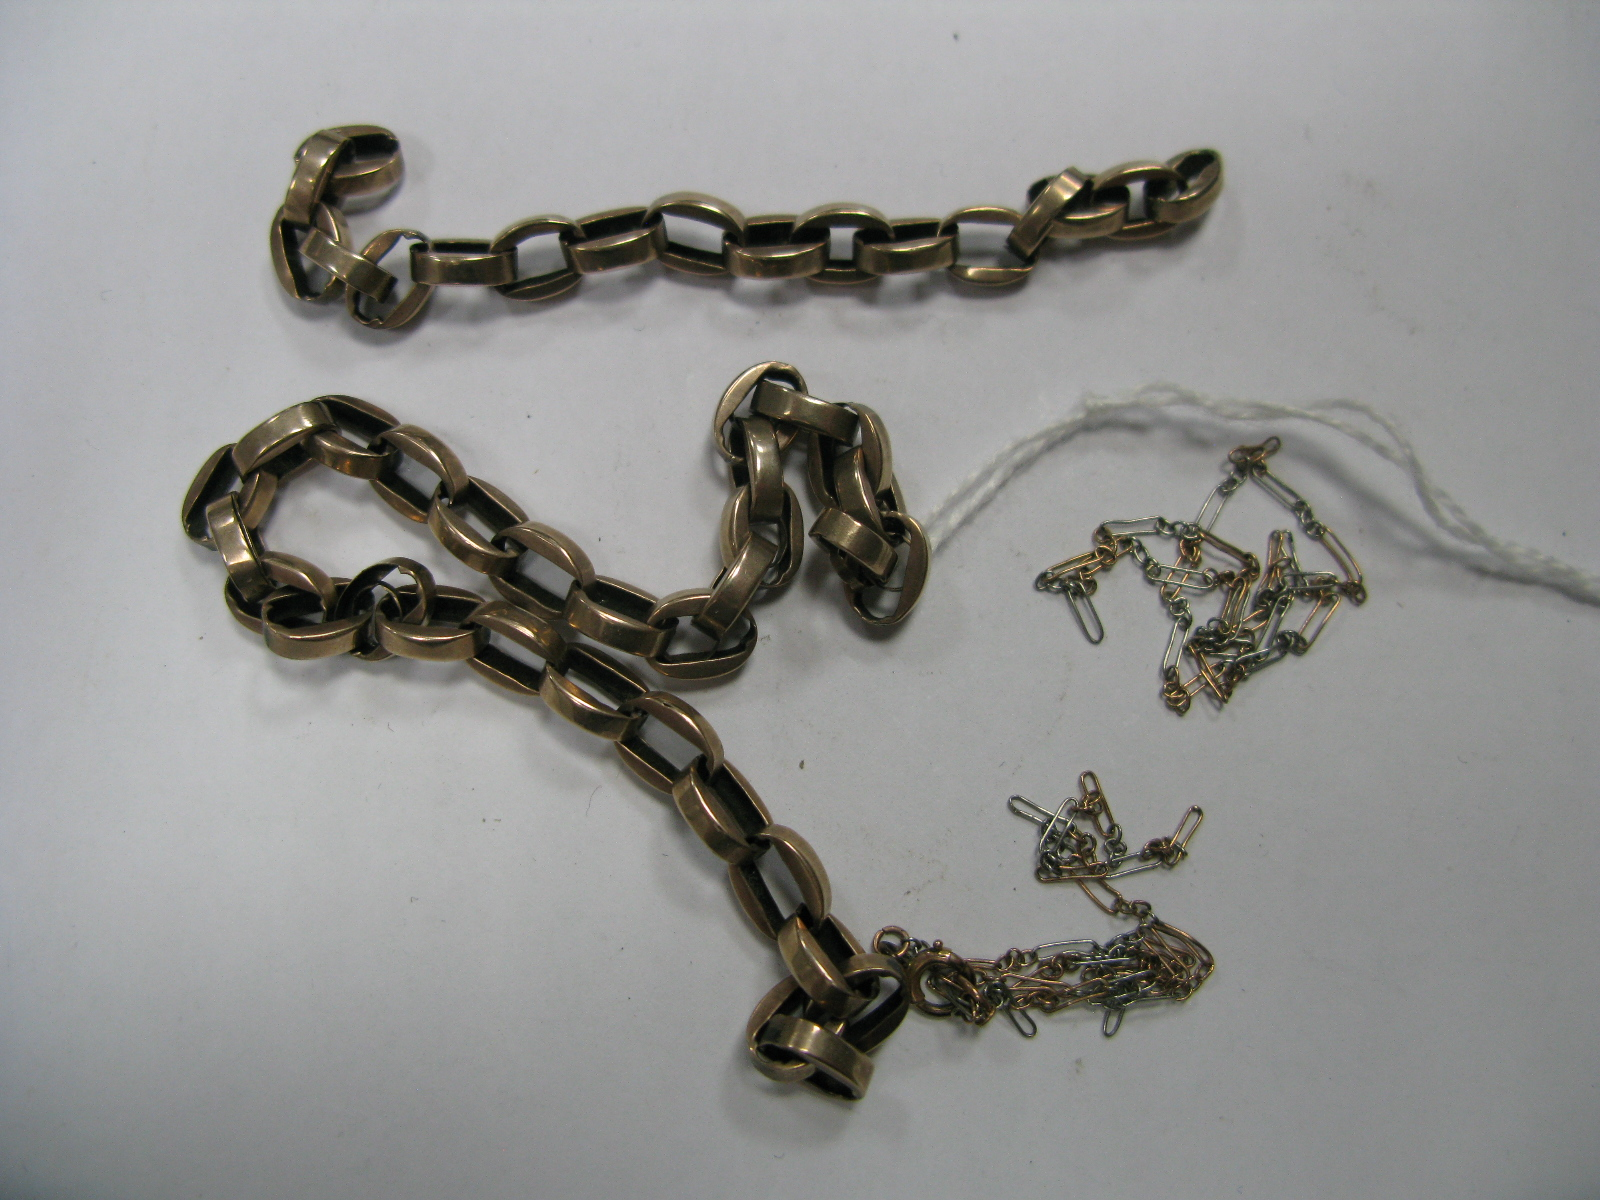 Lot 1390 - A Part Chain, (damaged), together with a fine two colour chain.